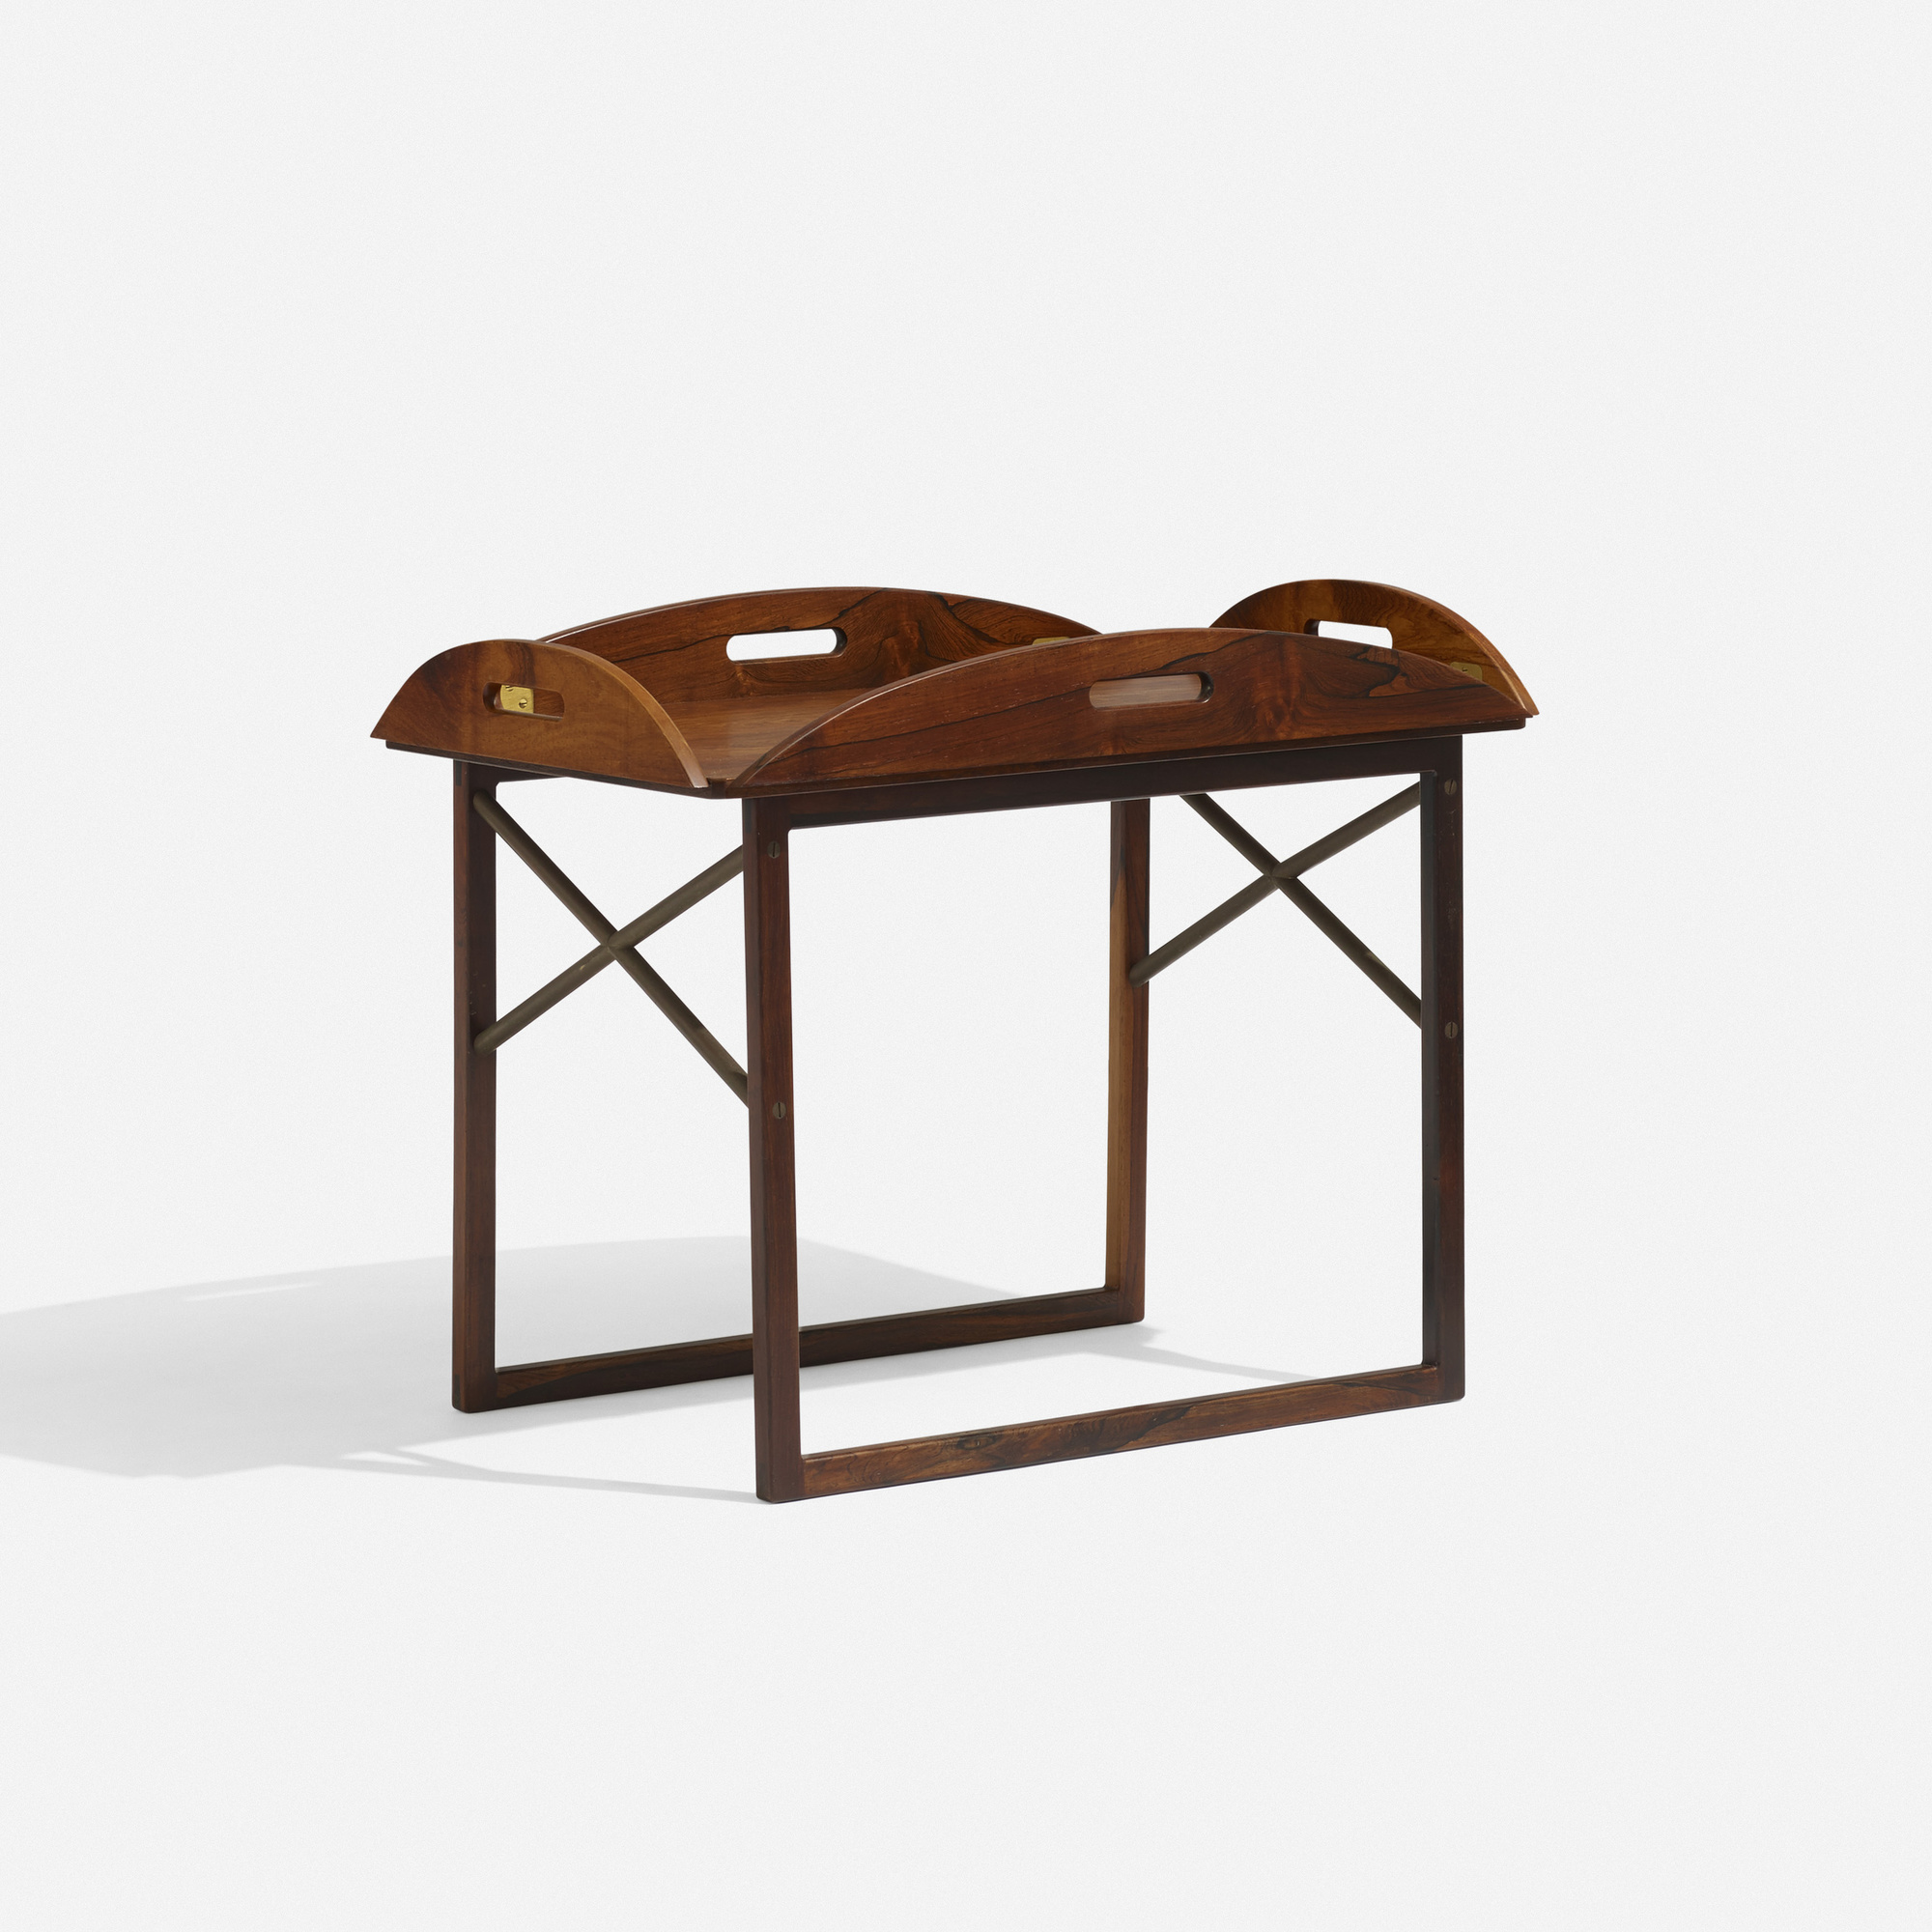 289: Svend Langkilde / tray table (1 of 3)